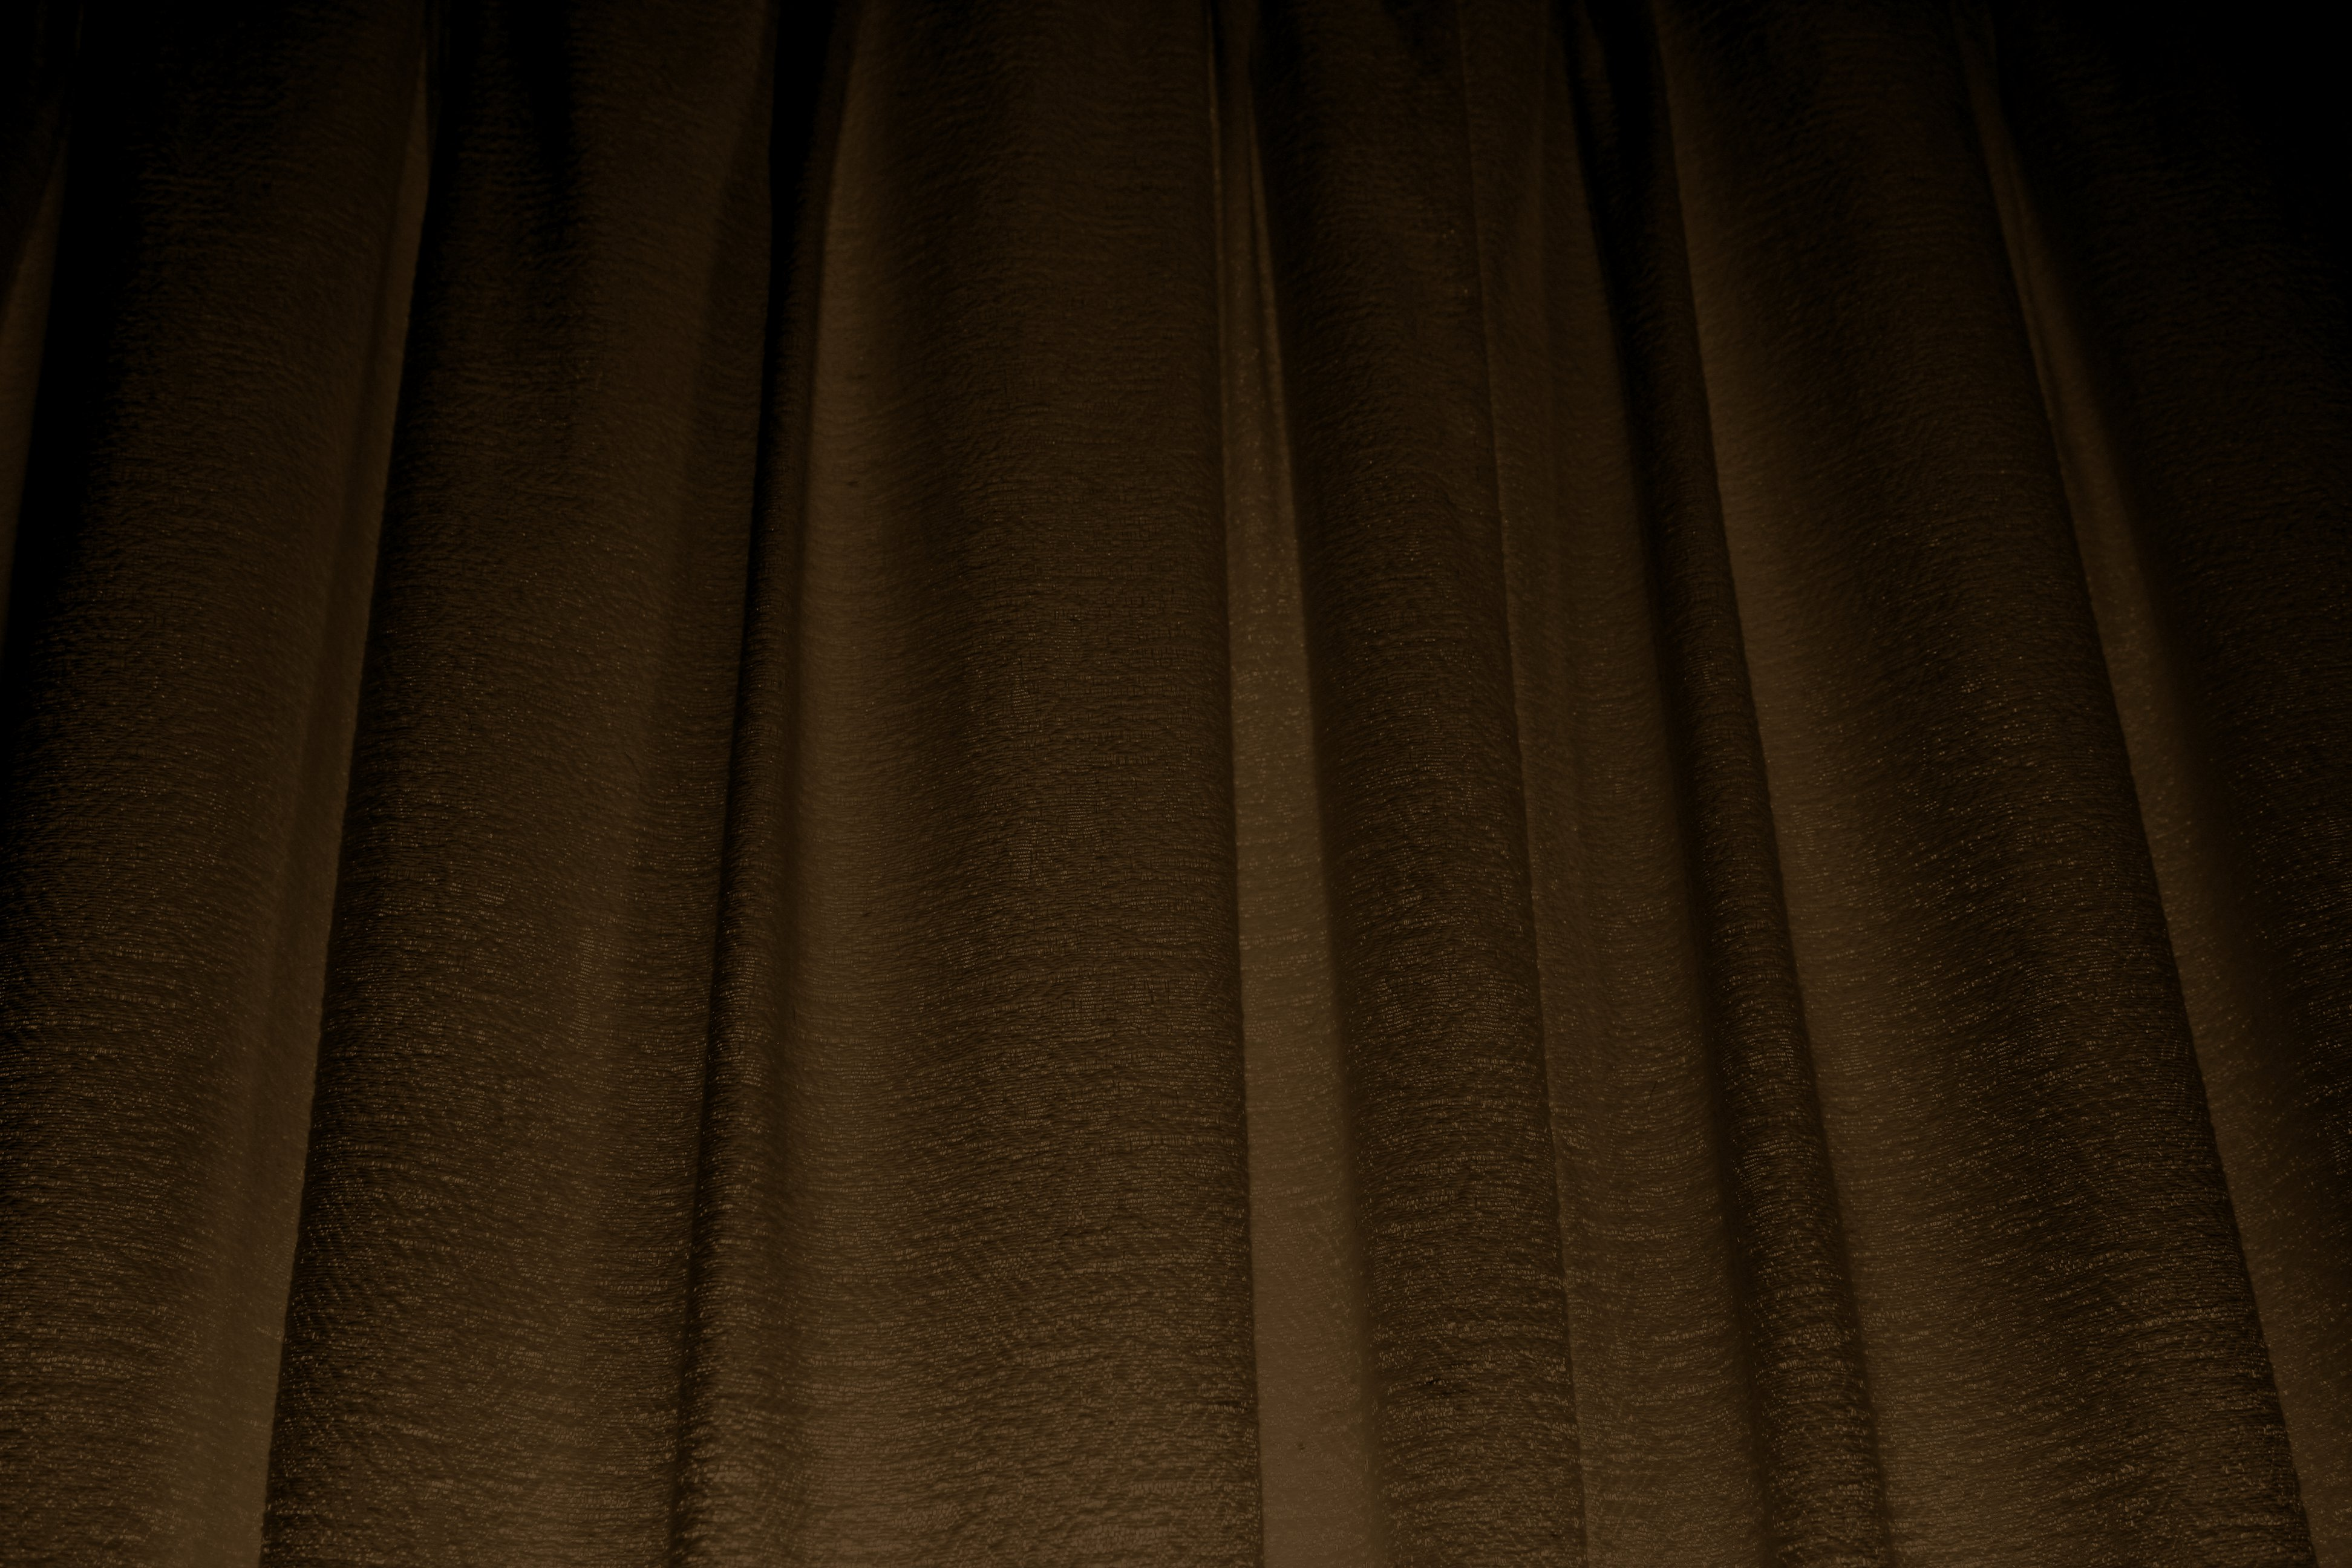 Dark Brown Curtains Texture Picture | Free Photograph | Photos Public ...